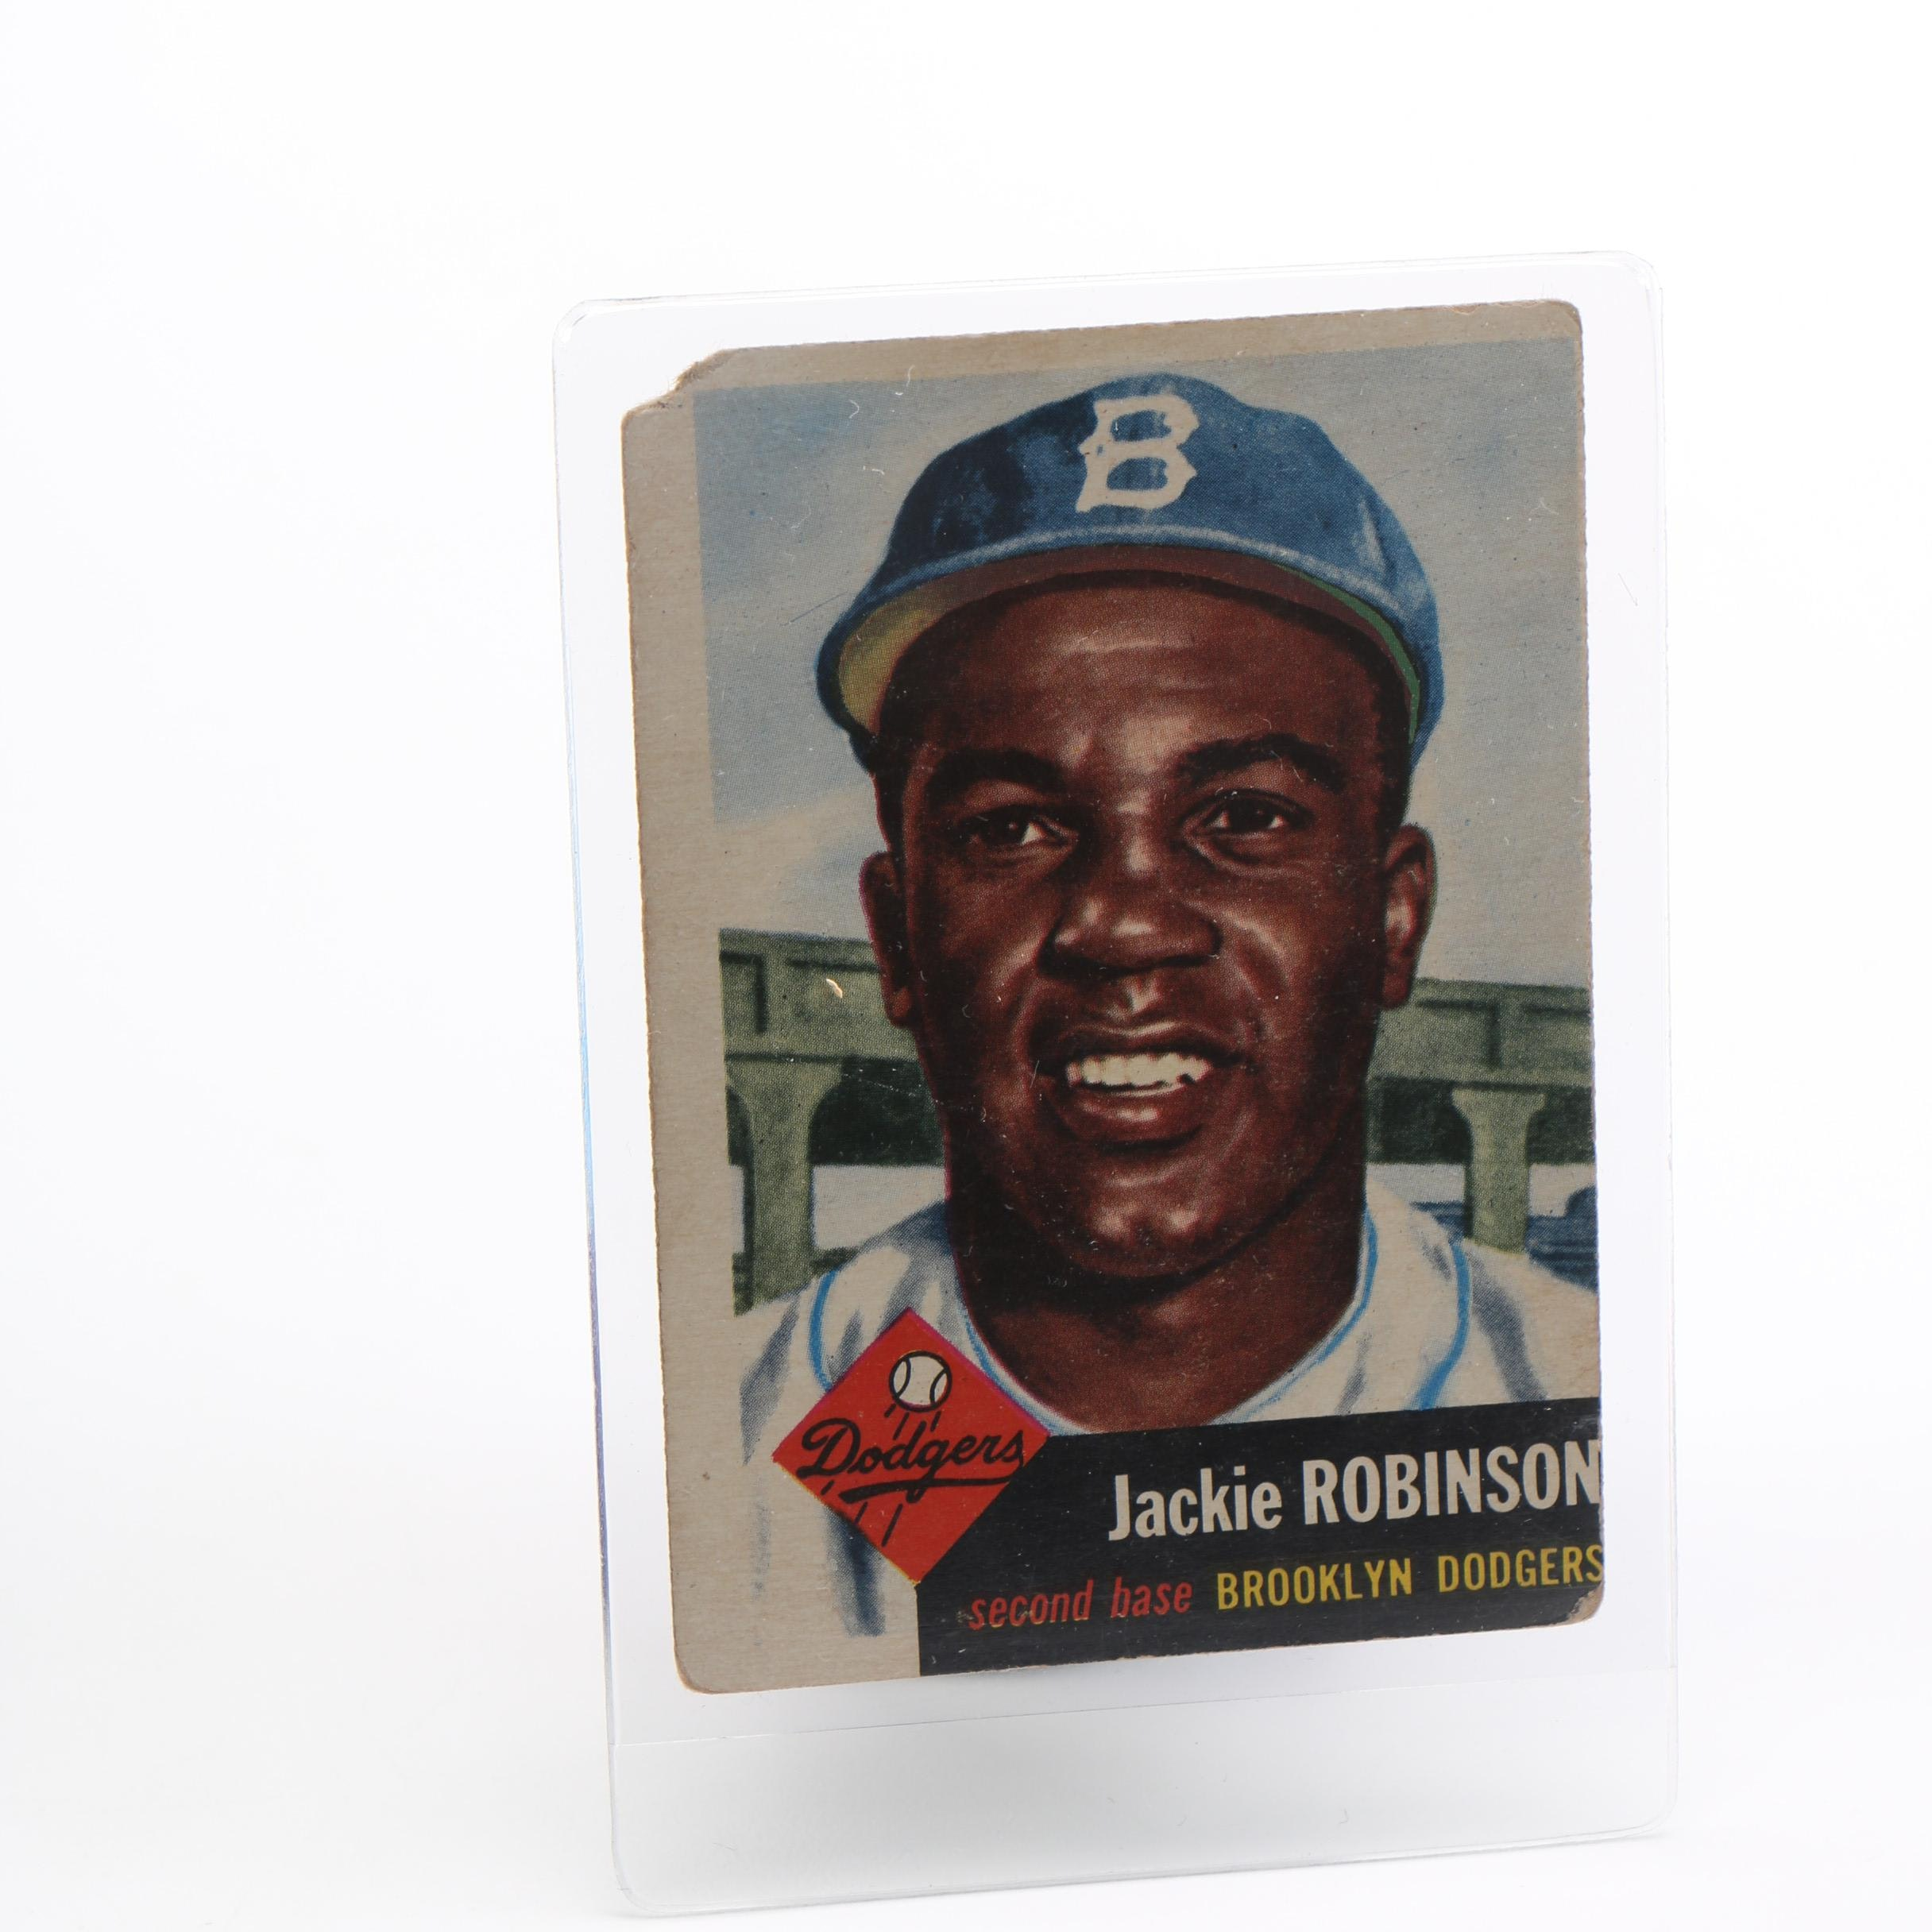 1953 Topps Jackie Robinson Card